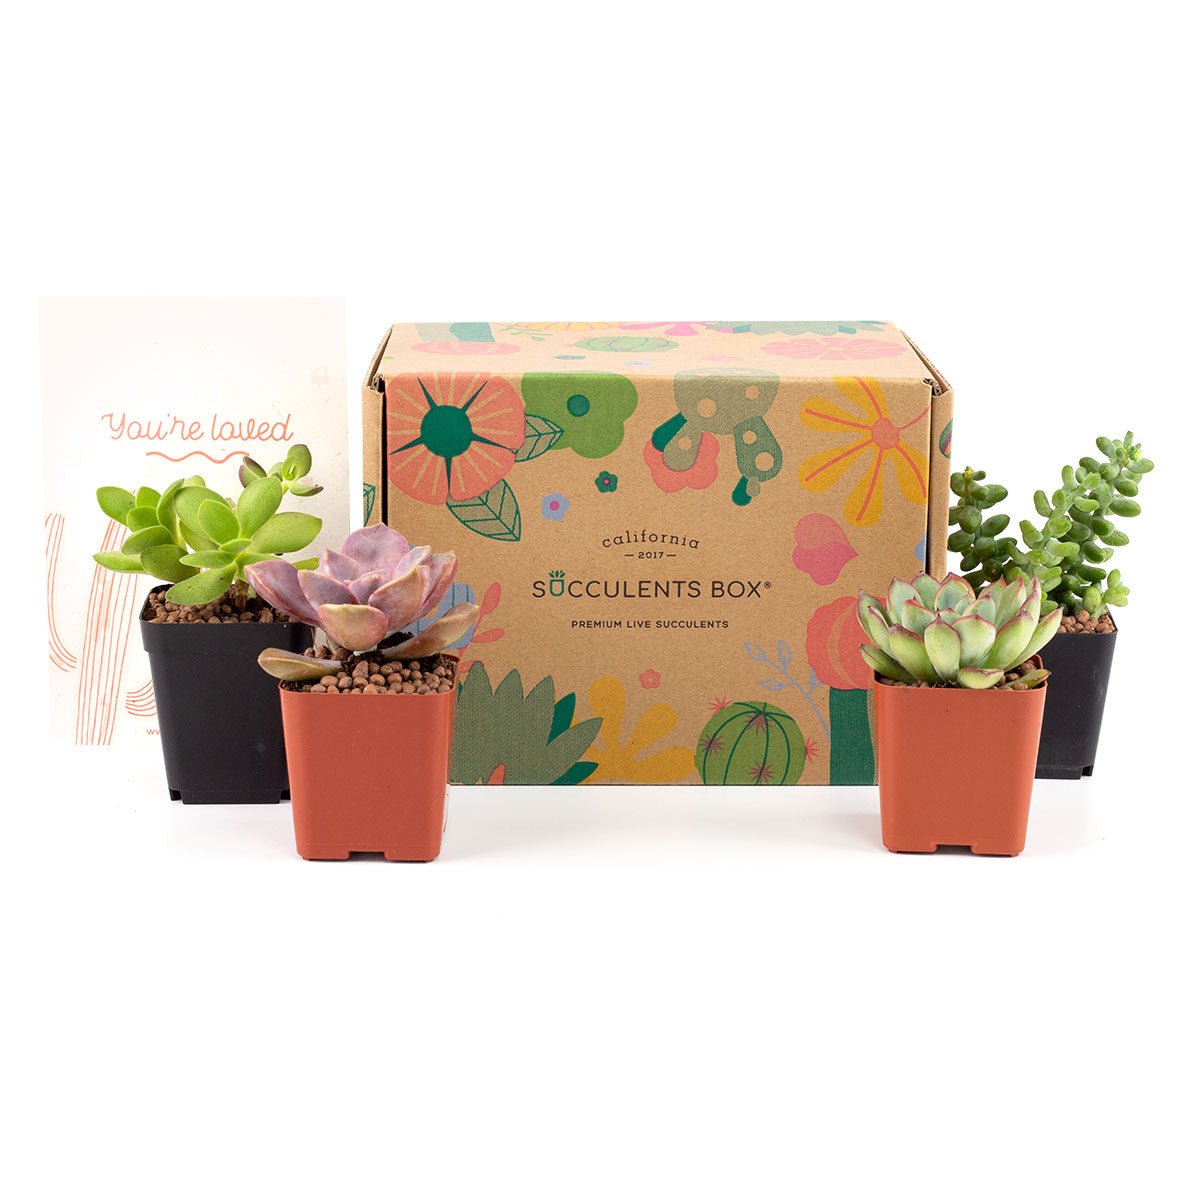 Succulents for Sale, Types of Succulents, Succulents Shop in California, Succulents and Cactus Plants, Cactus Box, Subscription Box with Care Instruction, Succulent Subscription Box